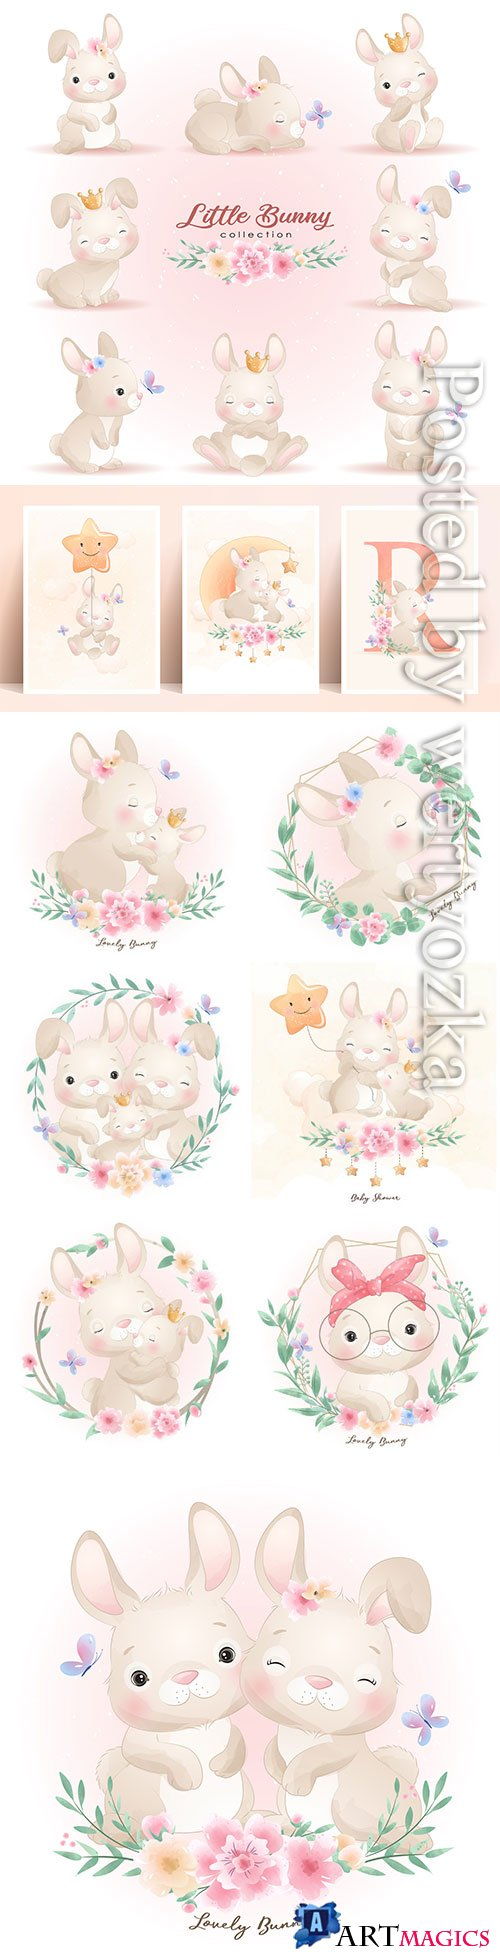 Cute doodle bunny poses with floral illustration premium vector